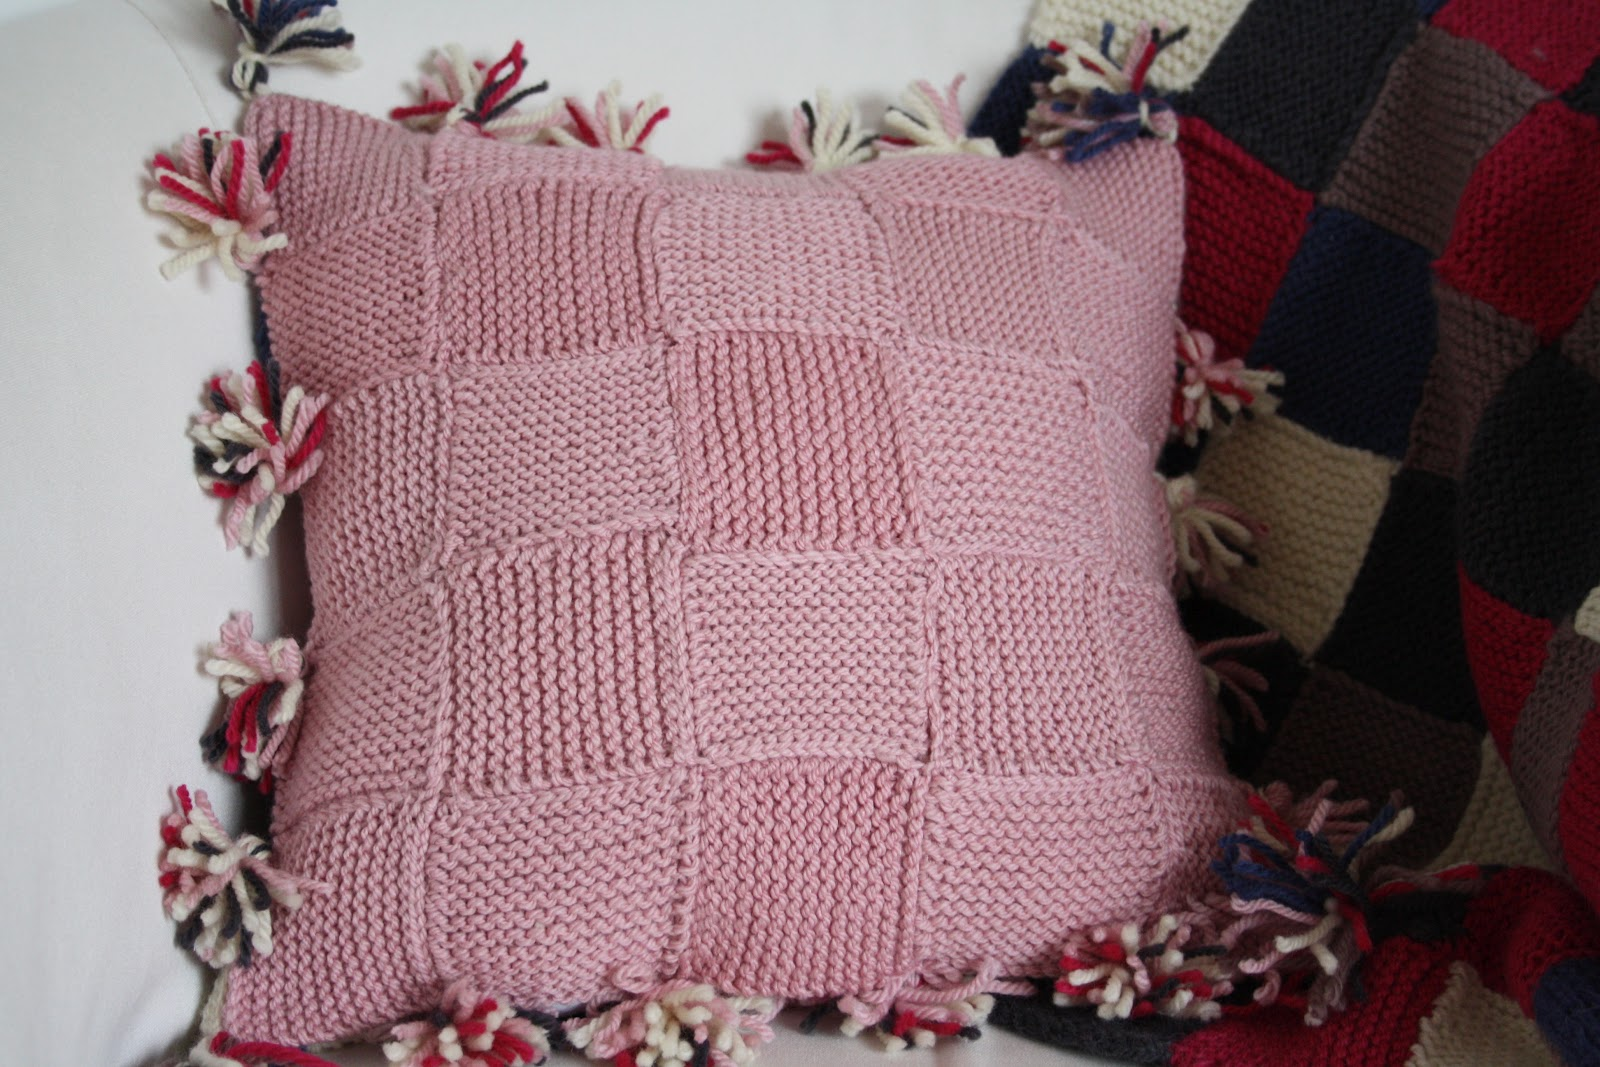 Tales from a happy house.: A Very, Very Simple Knitted Cushion